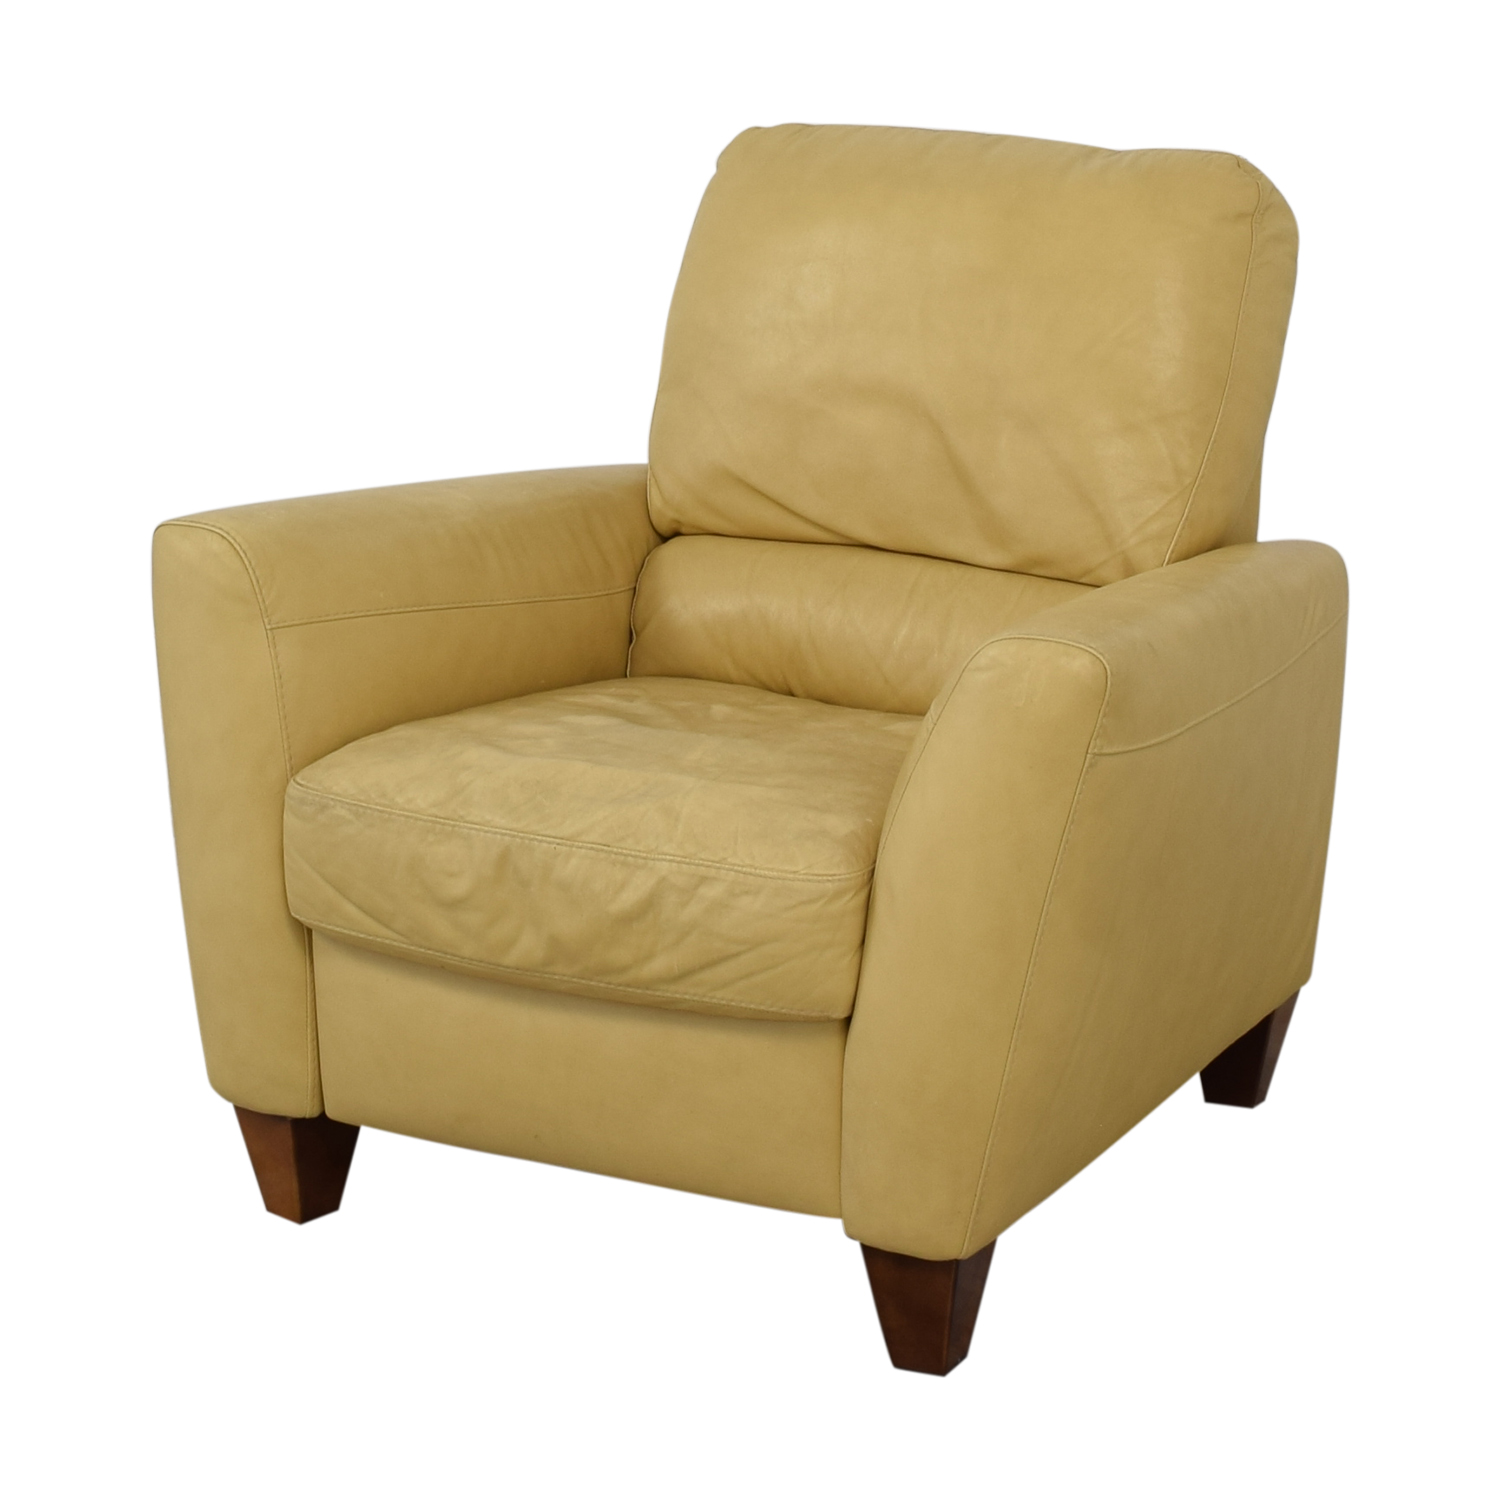 Macy's Macy's Mustard Yellow Recliner dimensions